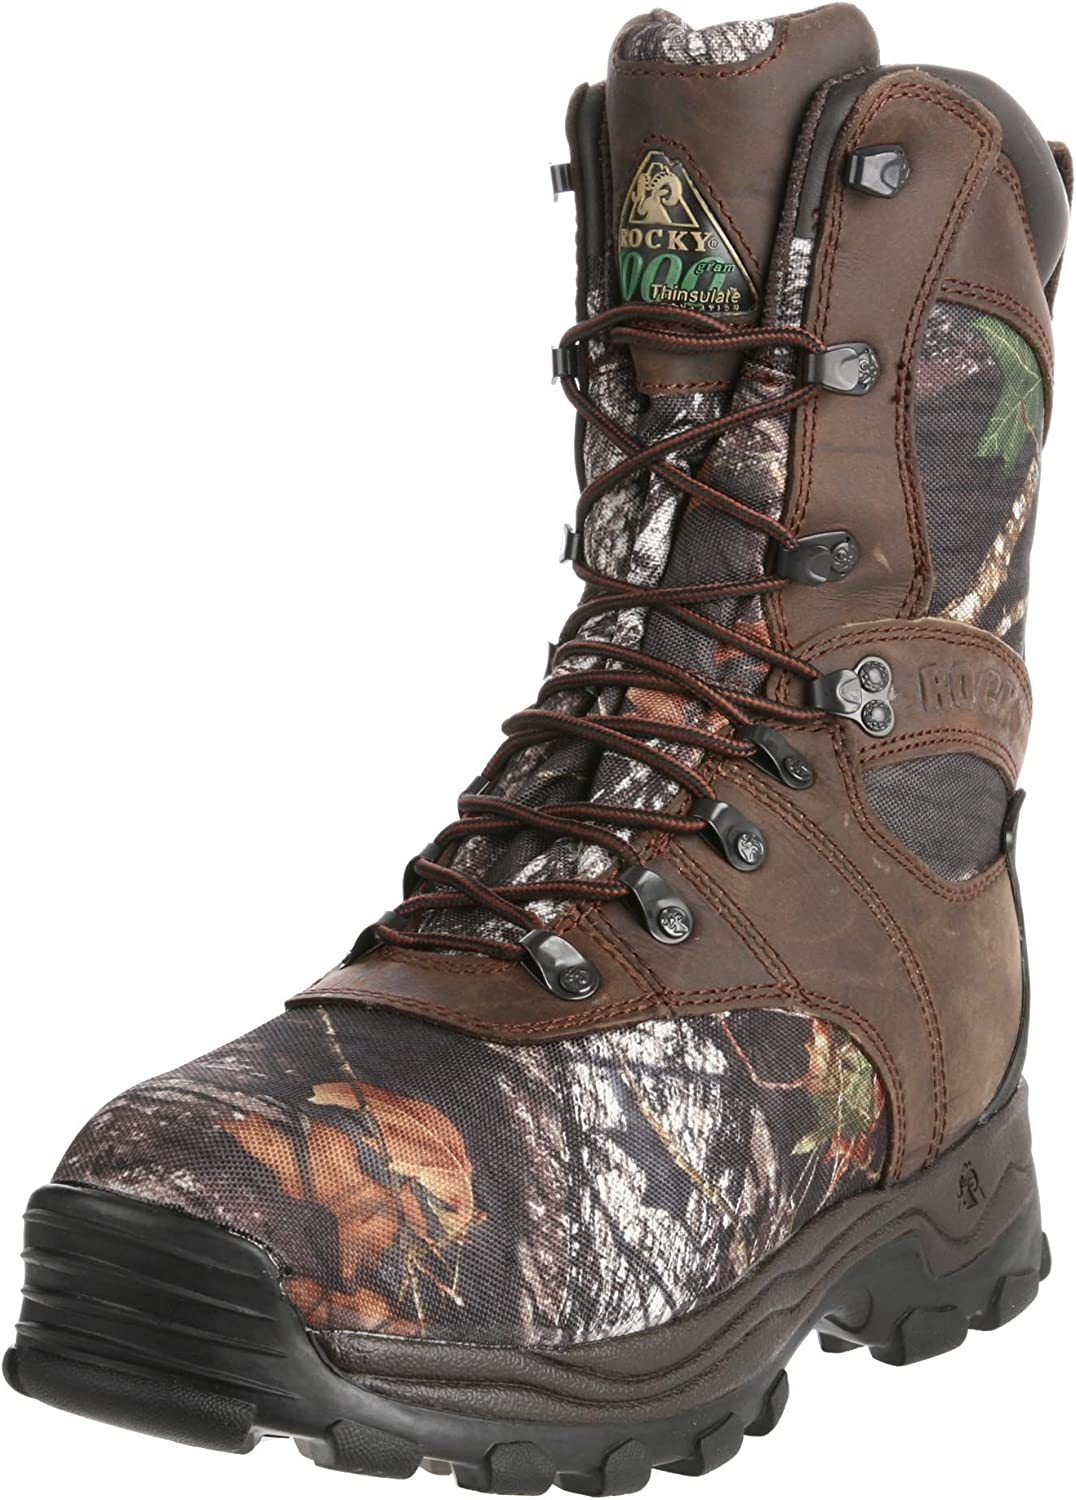 Rocky shoes and Boots Men's Sport Utility Pro Hunting Boot, Mossy Oak